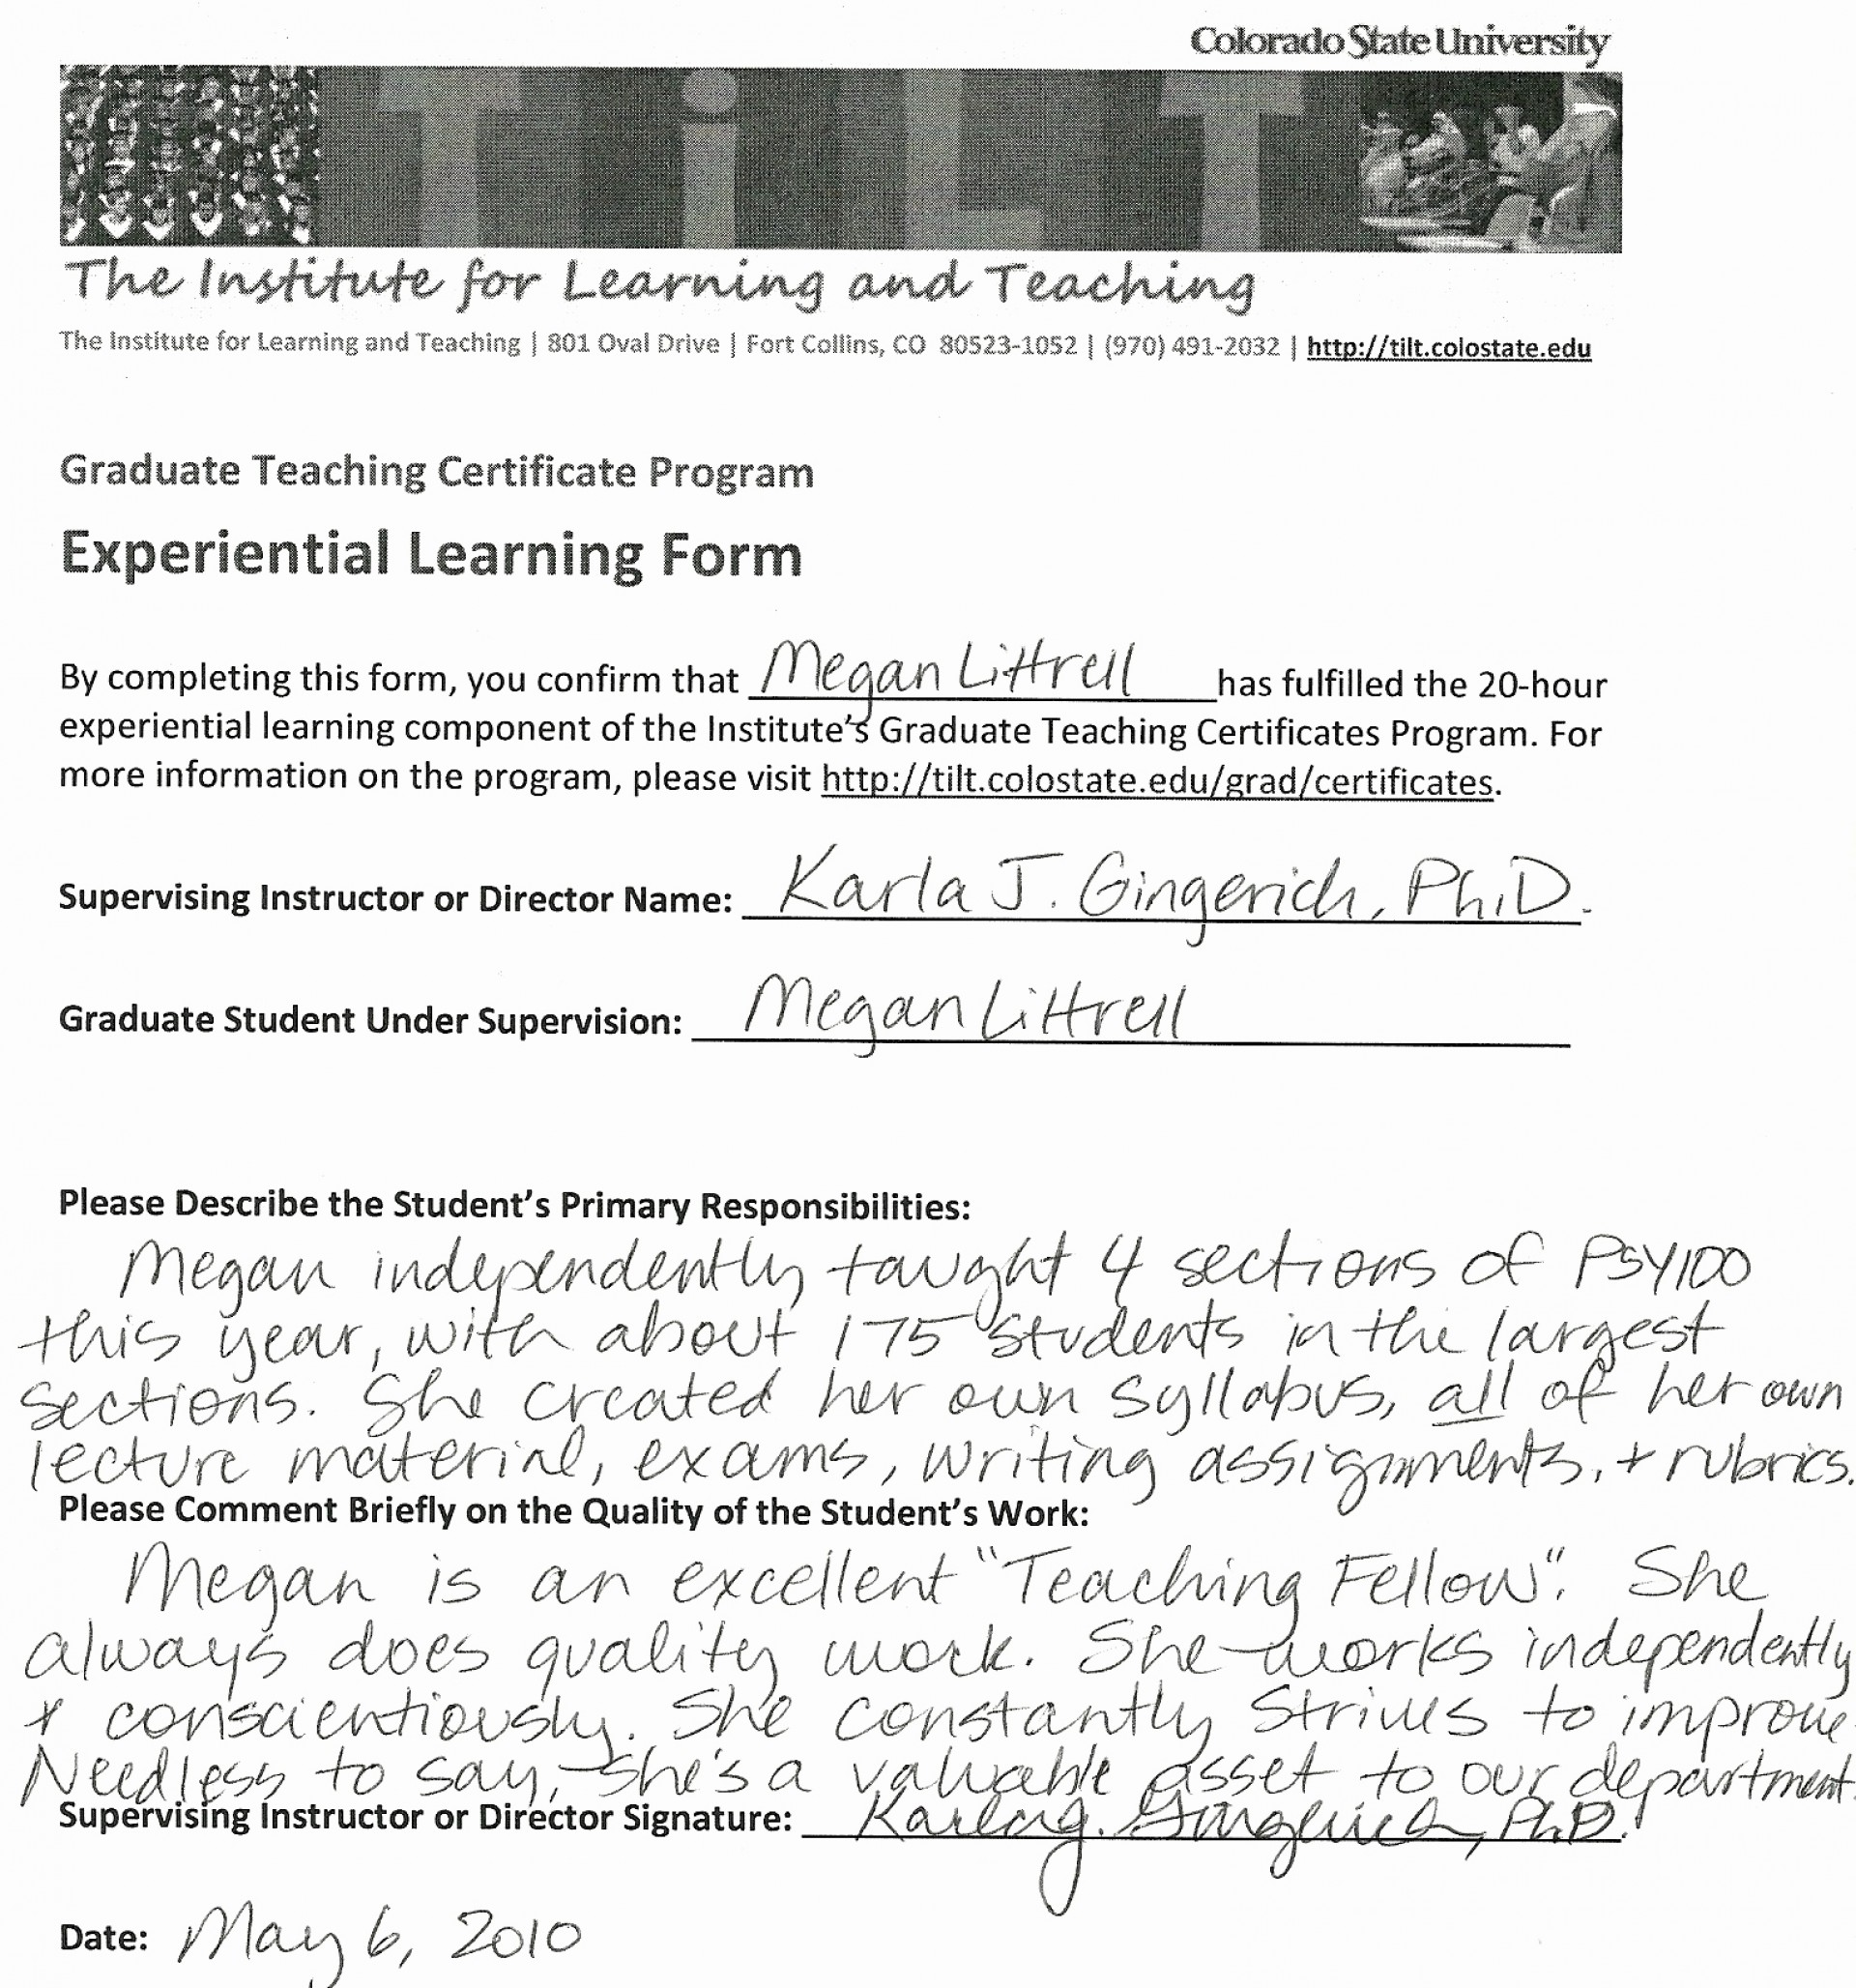 026 Essay Example Teacher Reflection On Lessons Examples New Teaching Th Grades Sample Of Incredible Prompt College Writing For 4th Grade Prompts Expository High School 1920